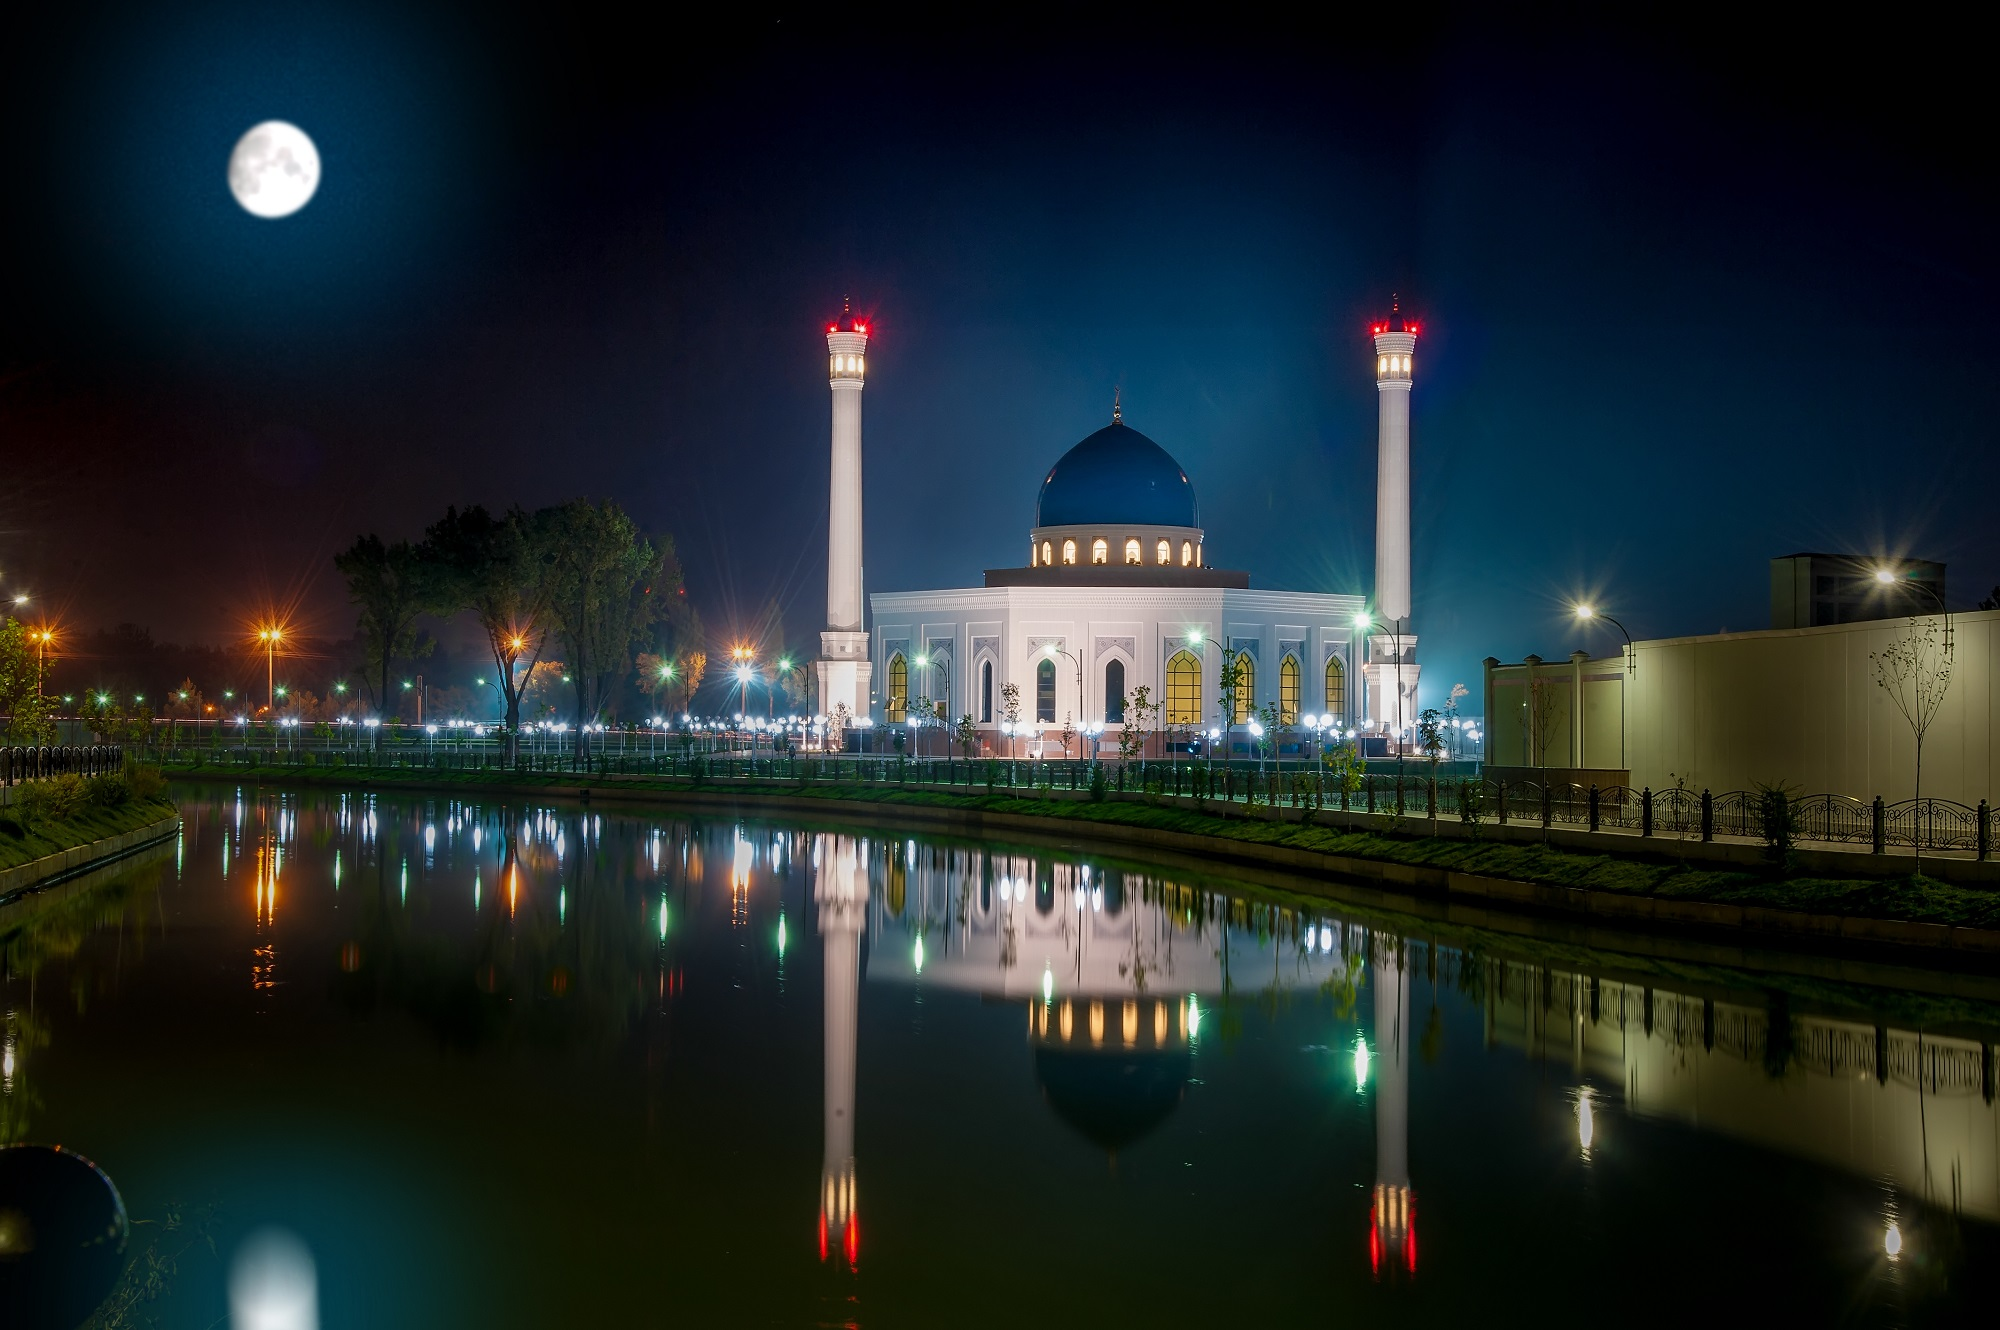 Beautiful Night Shot of Big New Mosque Minor, With Reflection in Water Under a Full Moon. Uzbekistan, Tashkent.